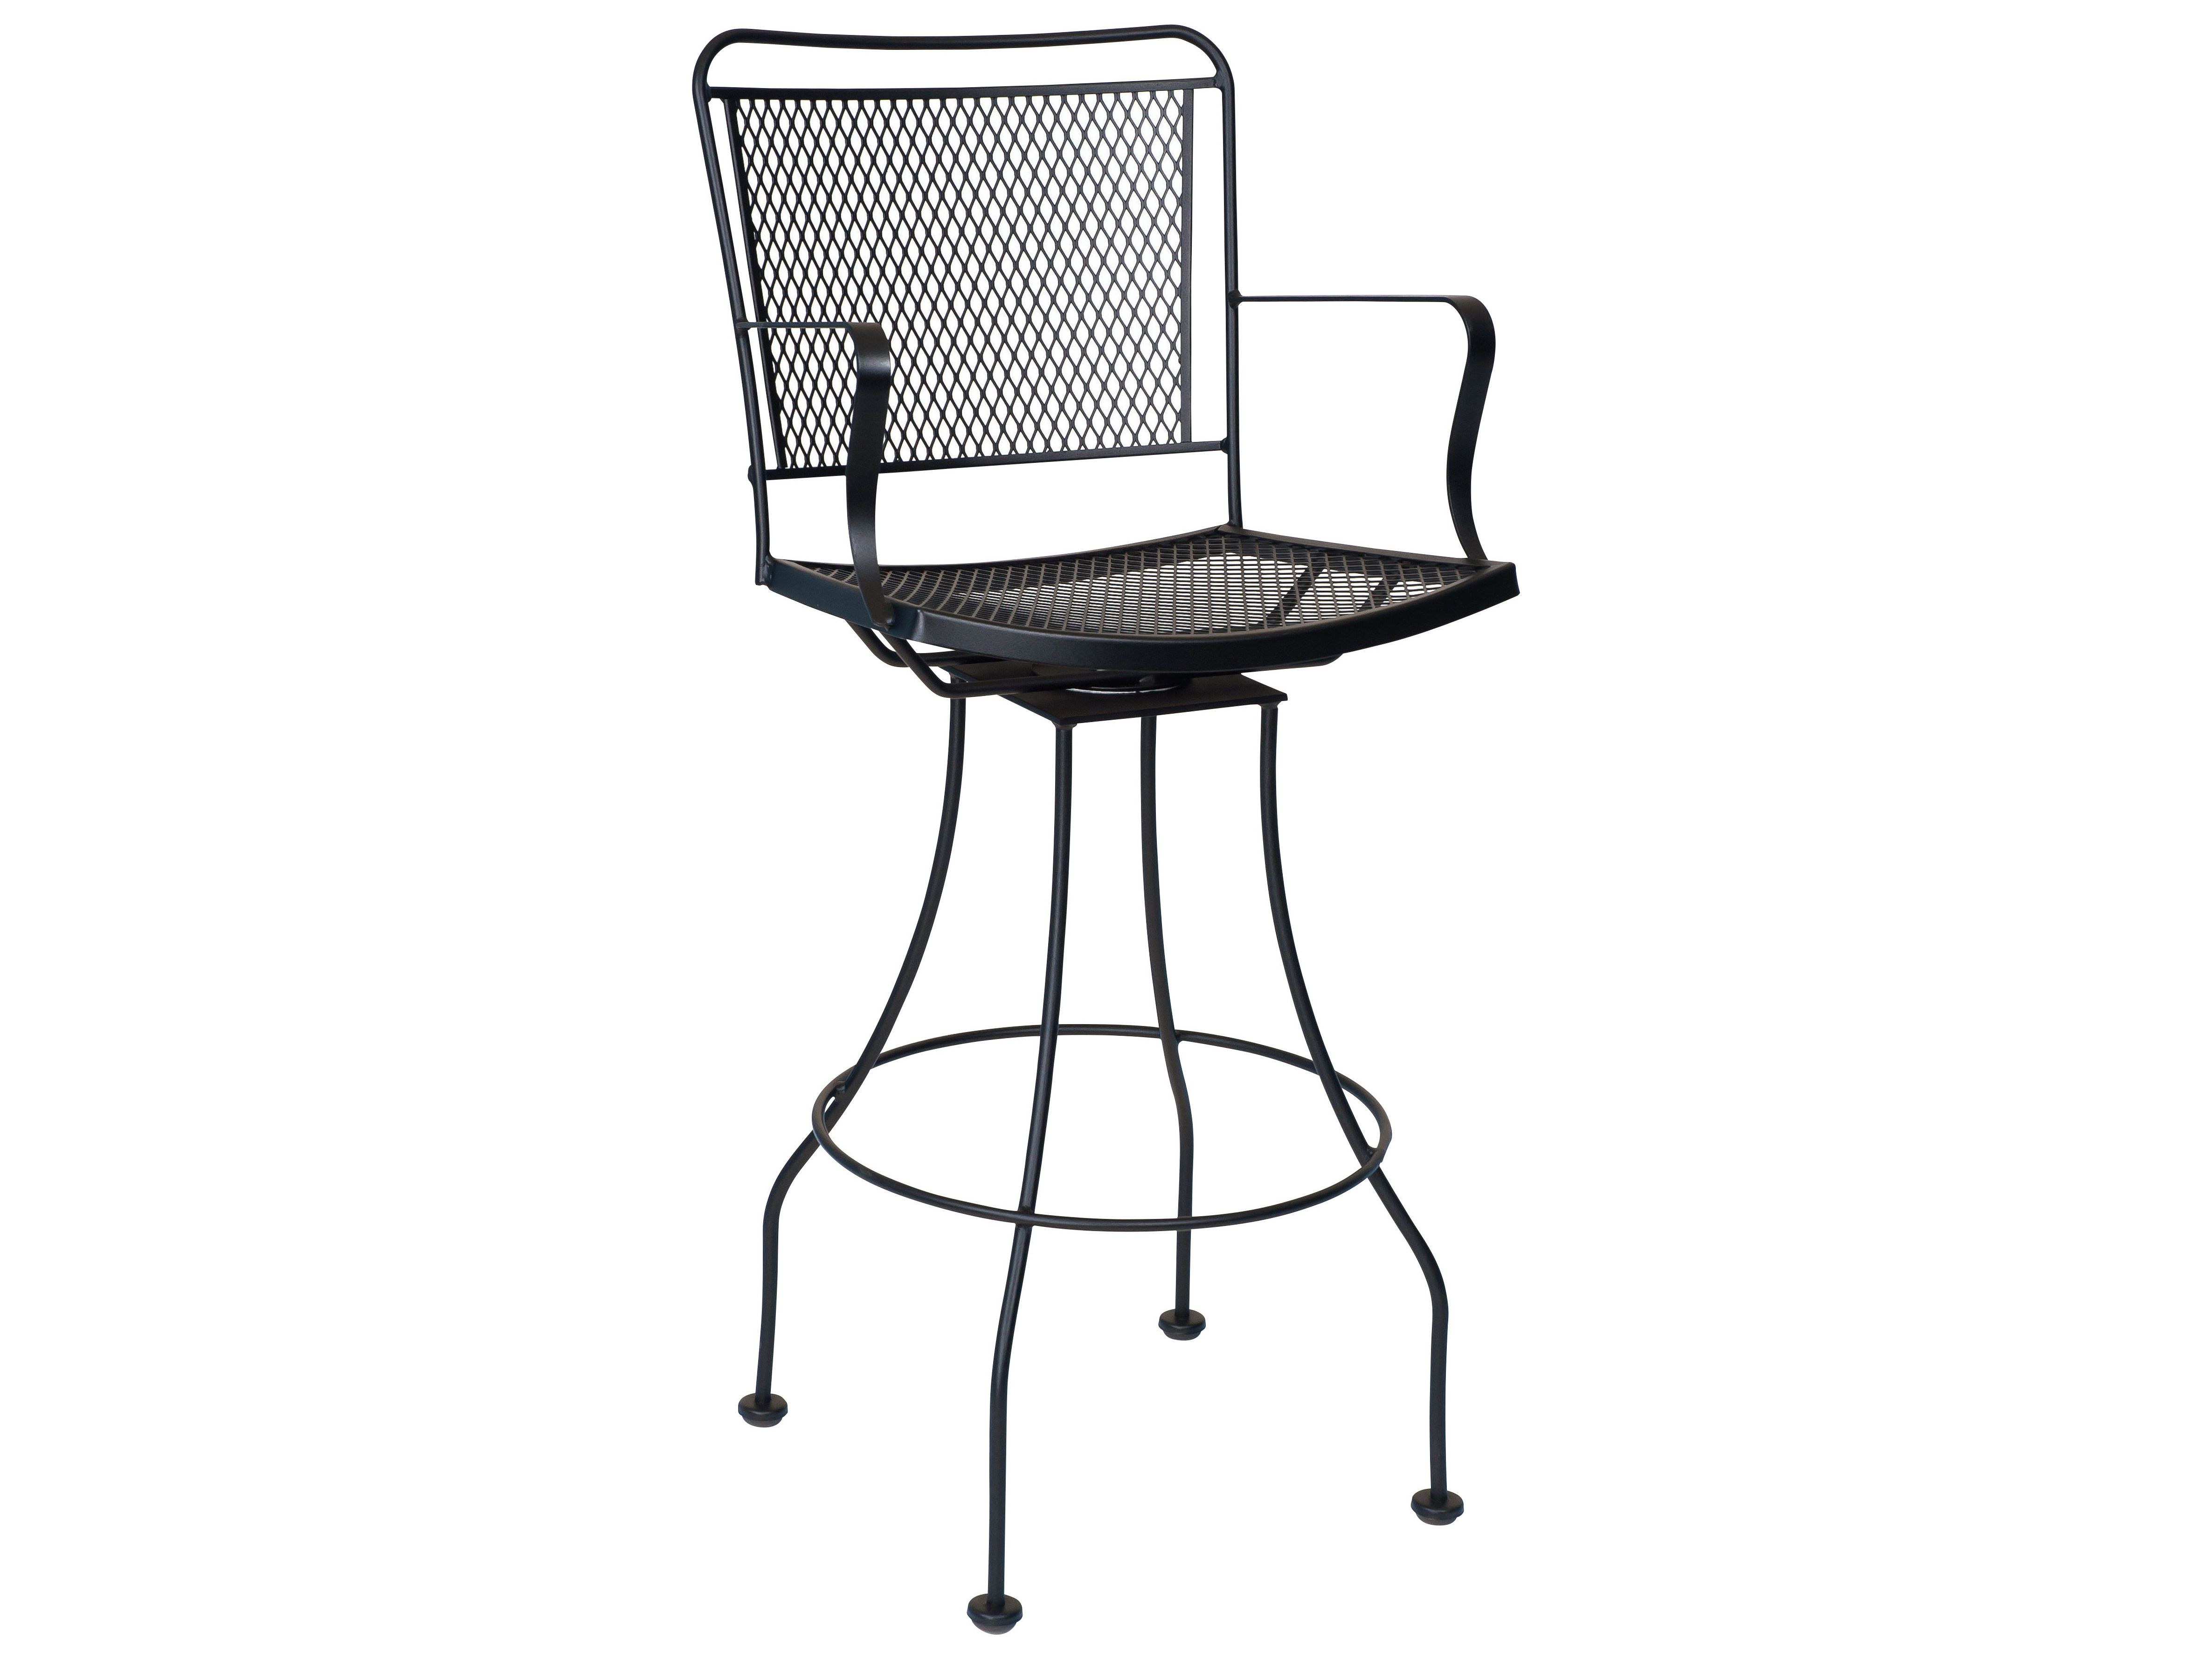 Groovy Woodard Constantine Wrought Iron Swivel Bar Stool For The Bralicious Painted Fabric Chair Ideas Braliciousco